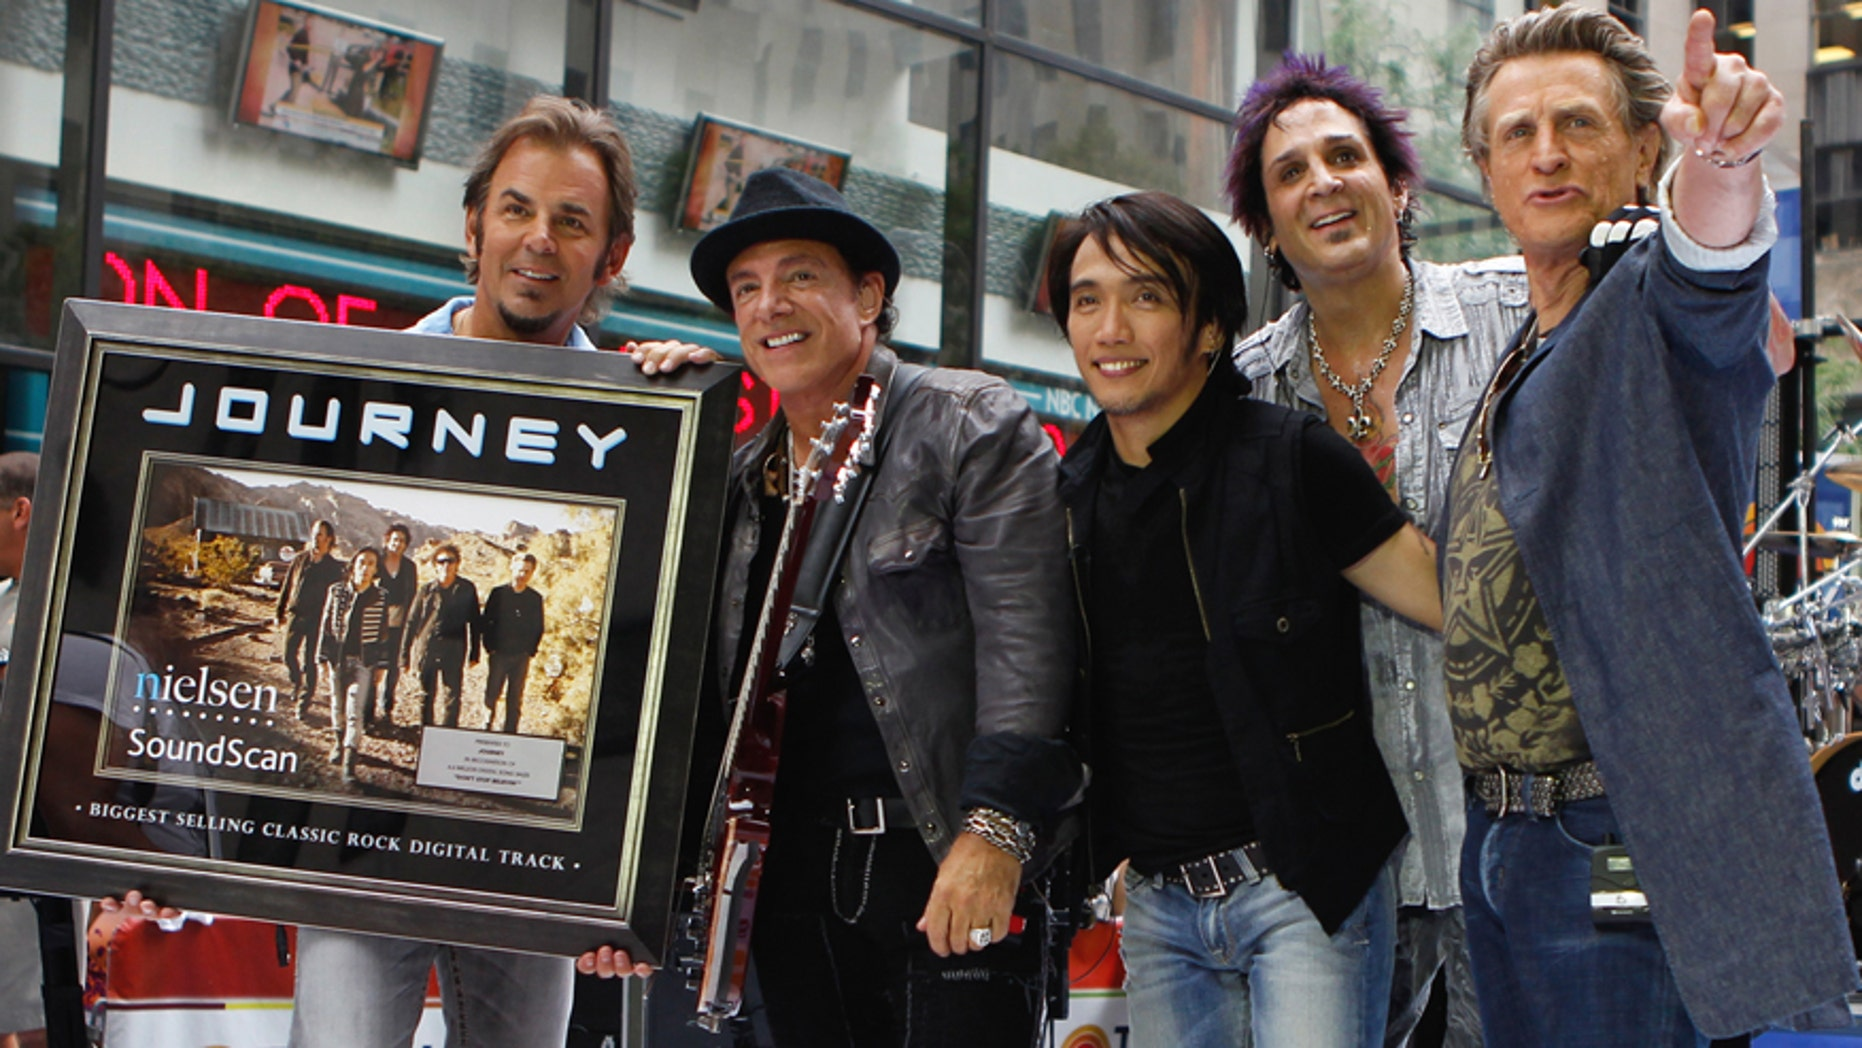 Journey band members (L-R) Jonathan Cain, Neal Schon, Arnel Pineda, Deen Castronovo, and Ross Valory pose together after performing on NBC's Today Show in New York July 29, 2011.  REUTERS